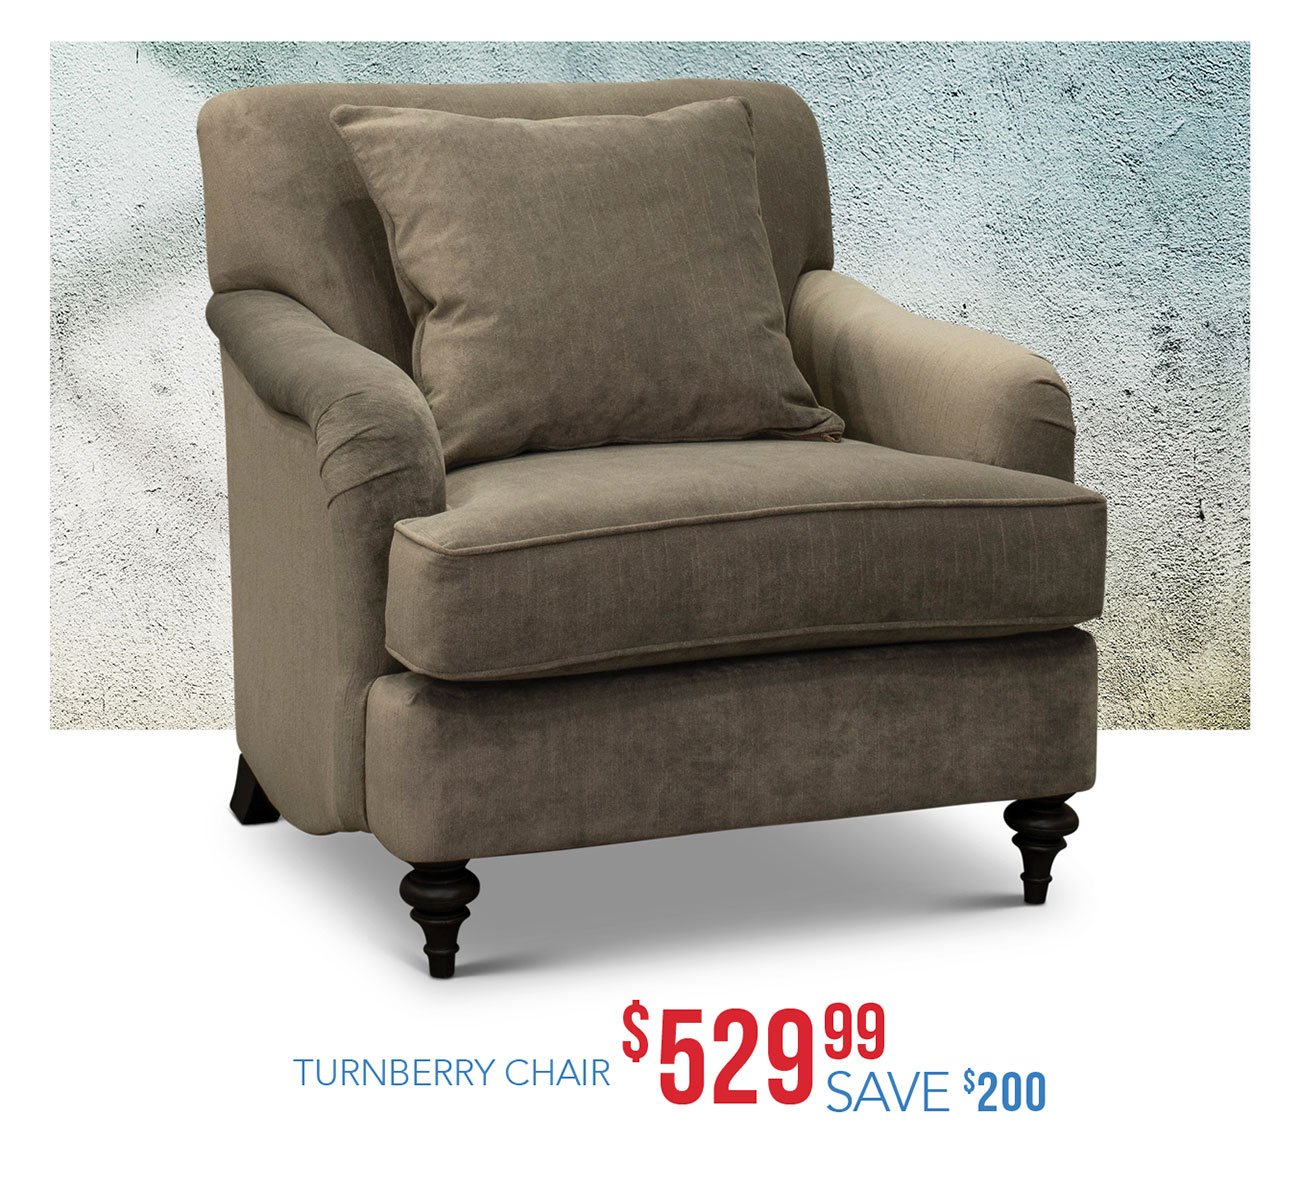 turnberry-chair